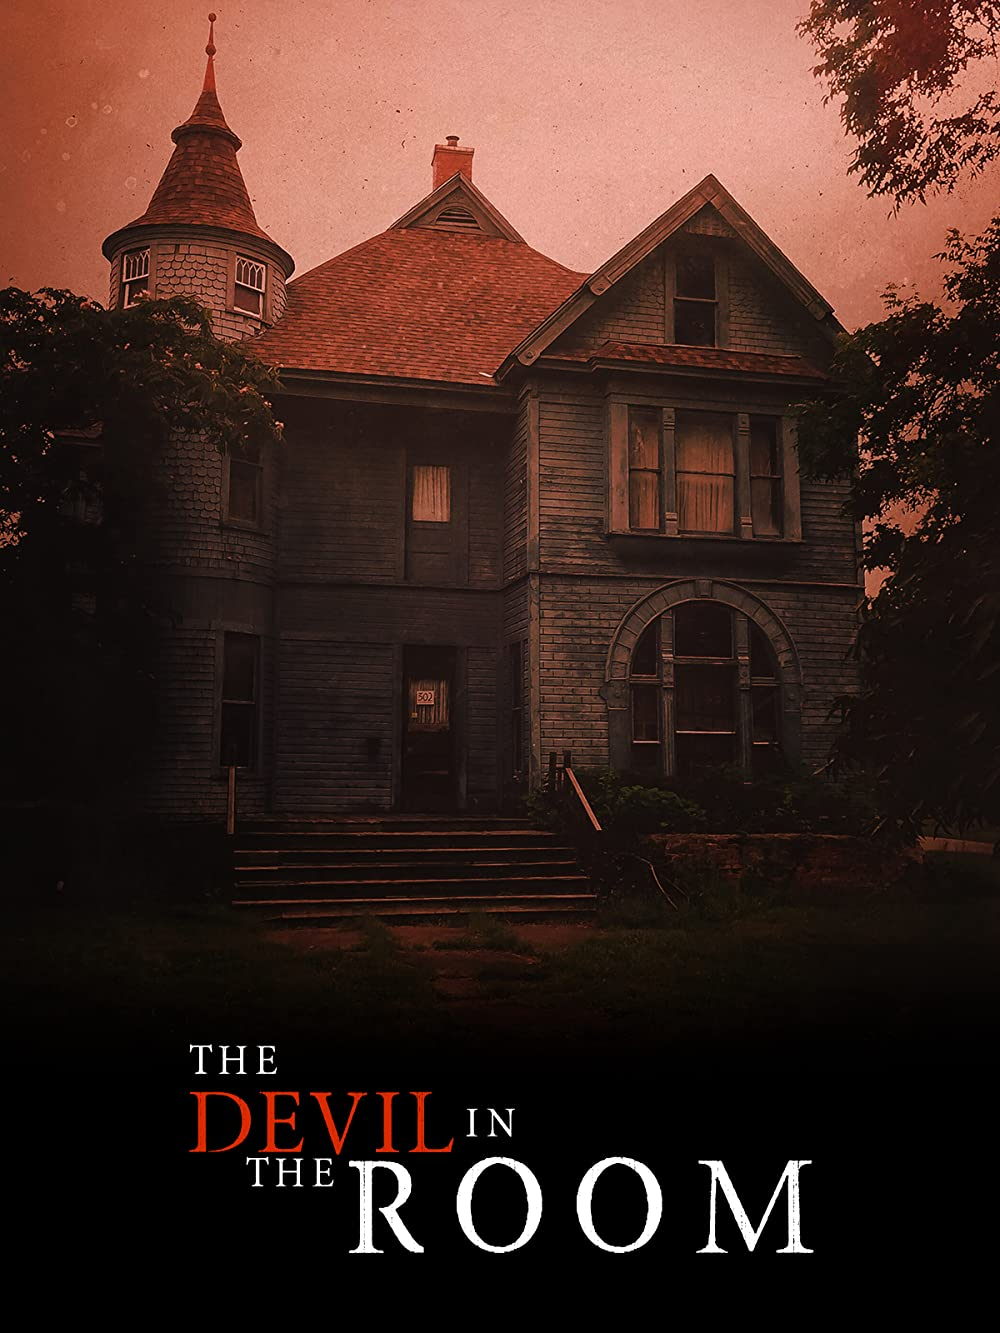 The Devil in the Room 2020 English 1080p HDRip 1GB Download